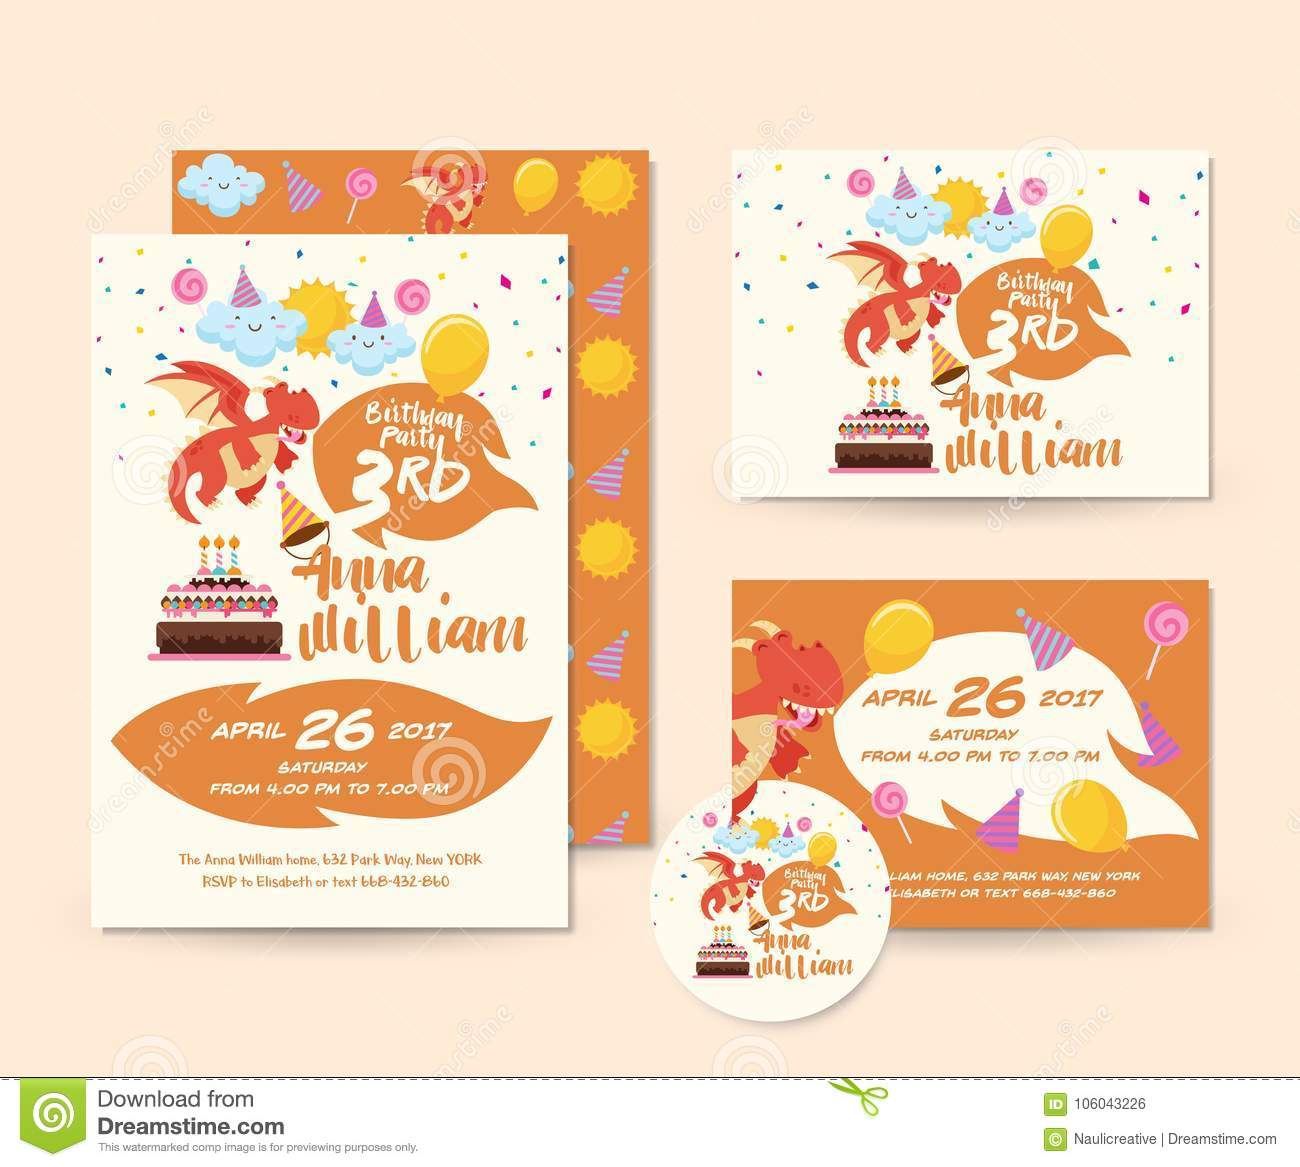 Netter Dragon Theme Happy Birthday Invitations Karten Satz Und Flieger Illustrations Schablone